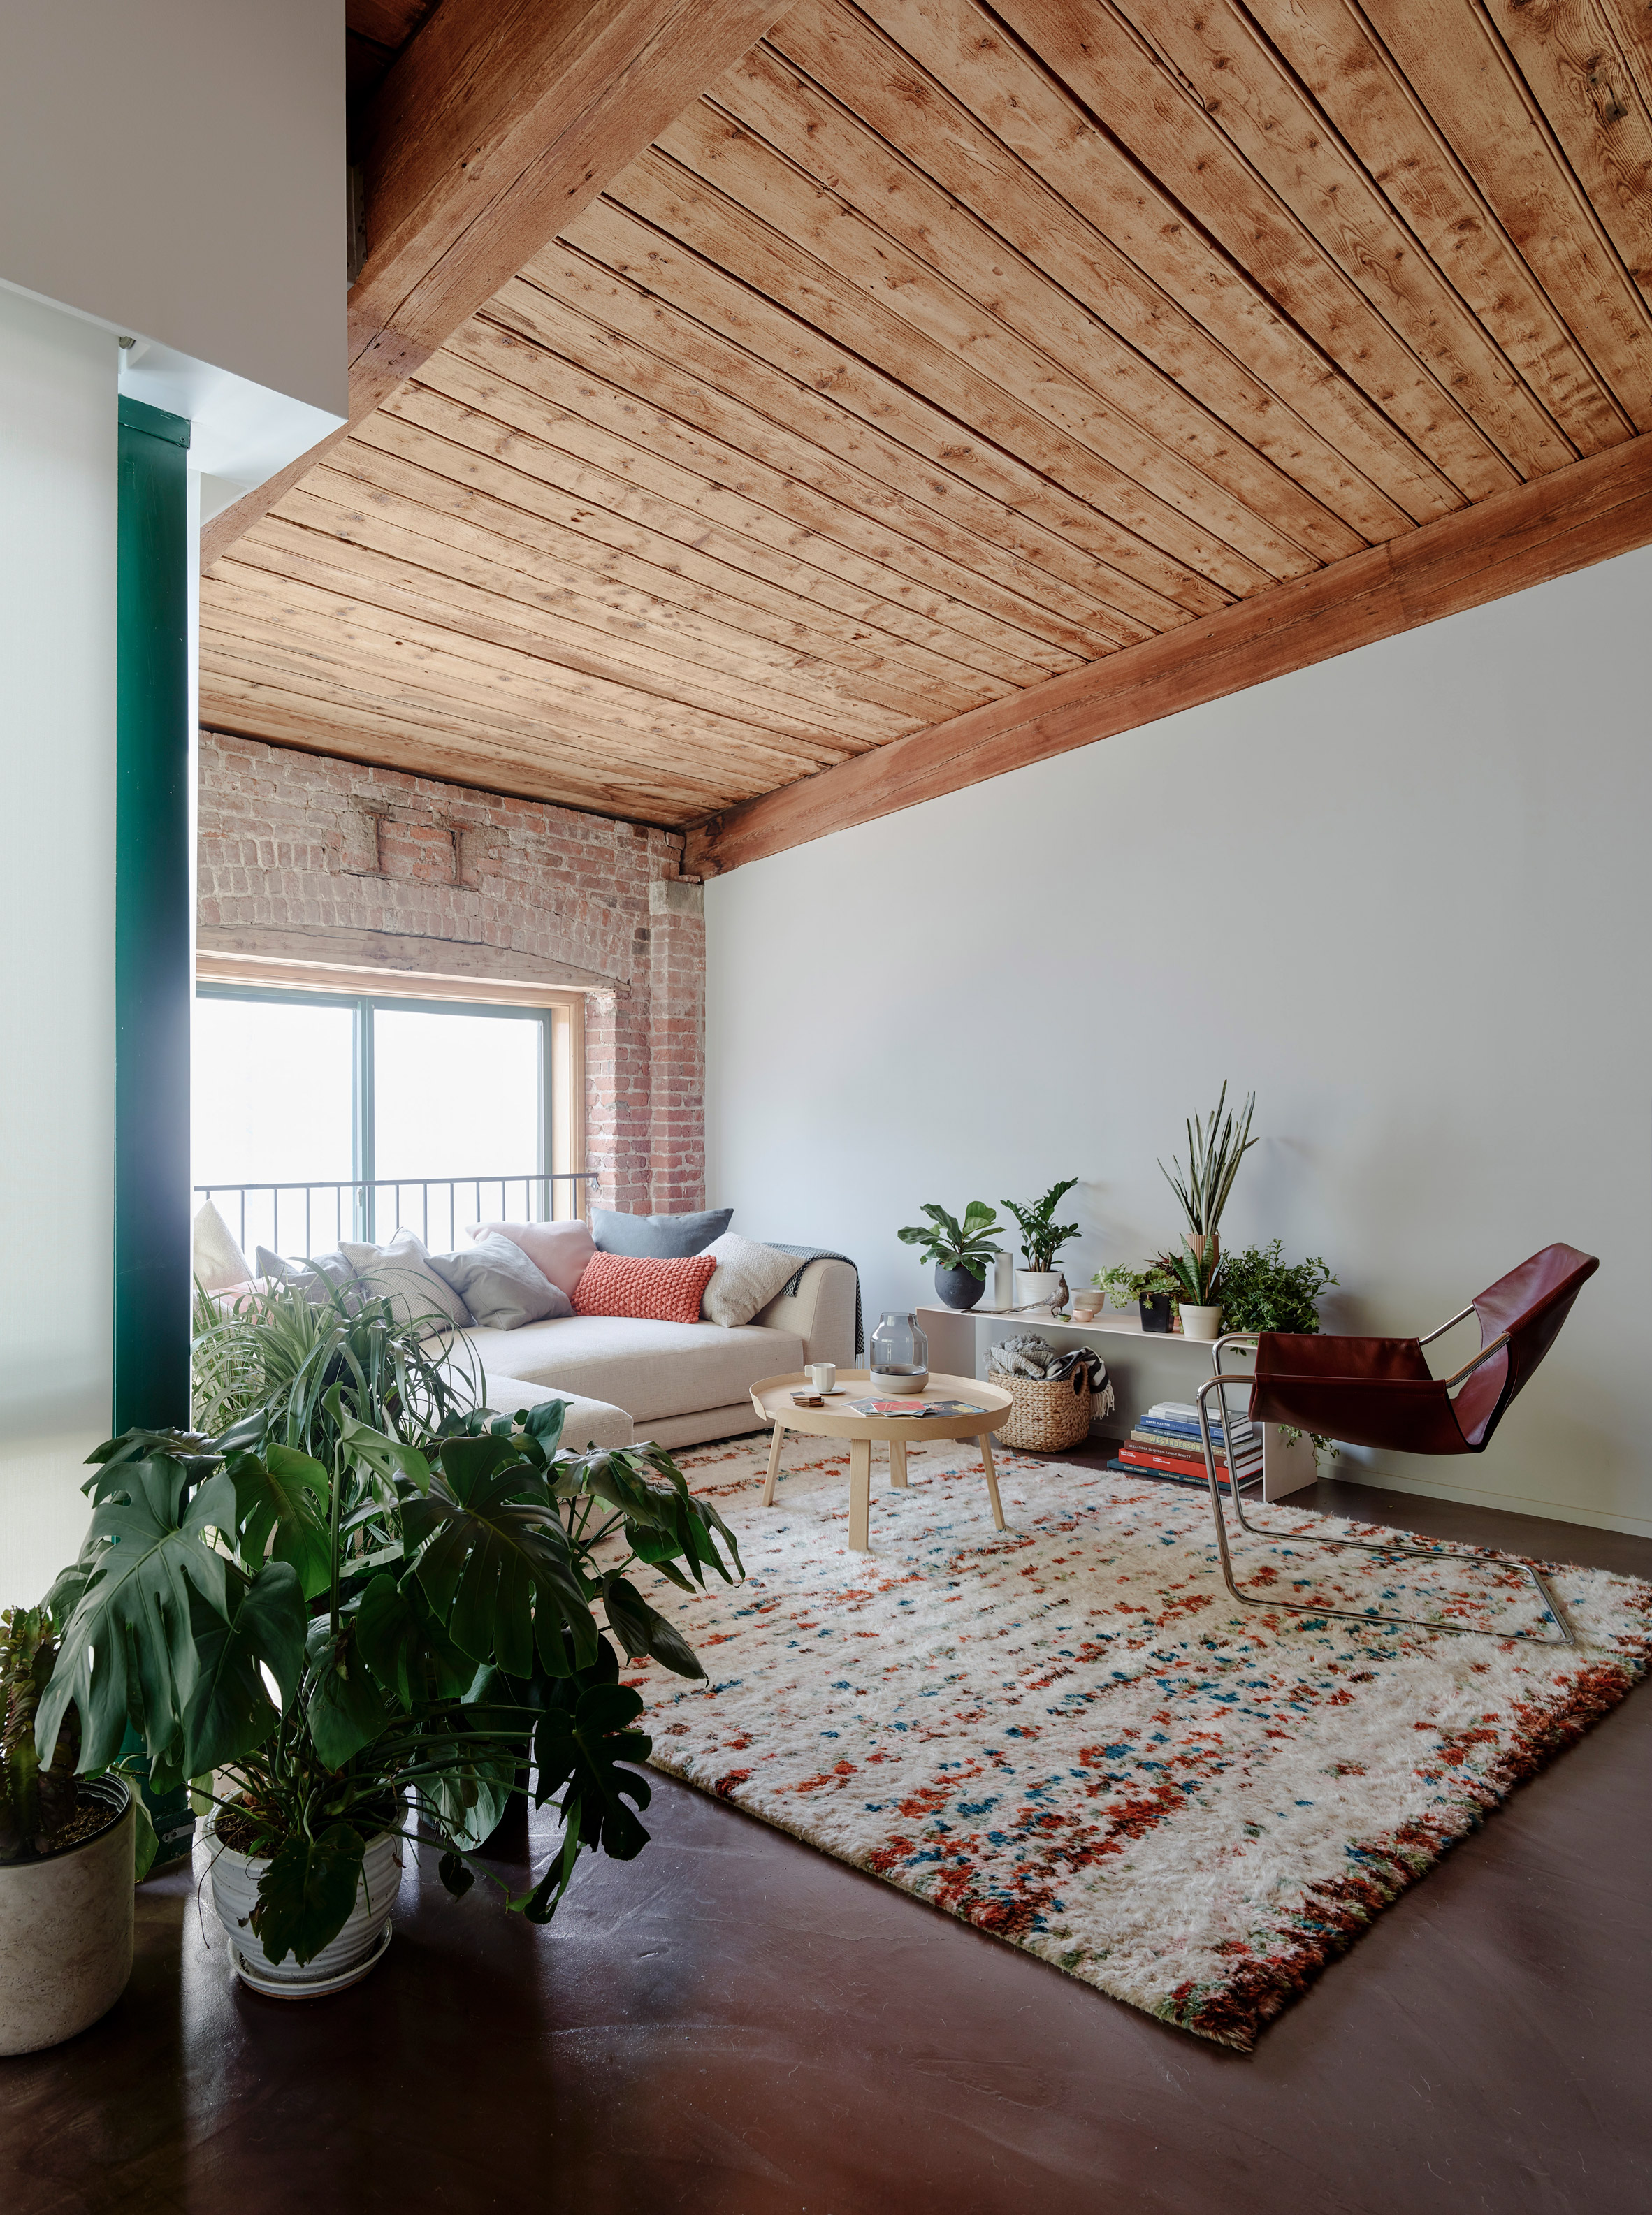 General Assembly exposes wooden beams inside revamped Brooklyn loft